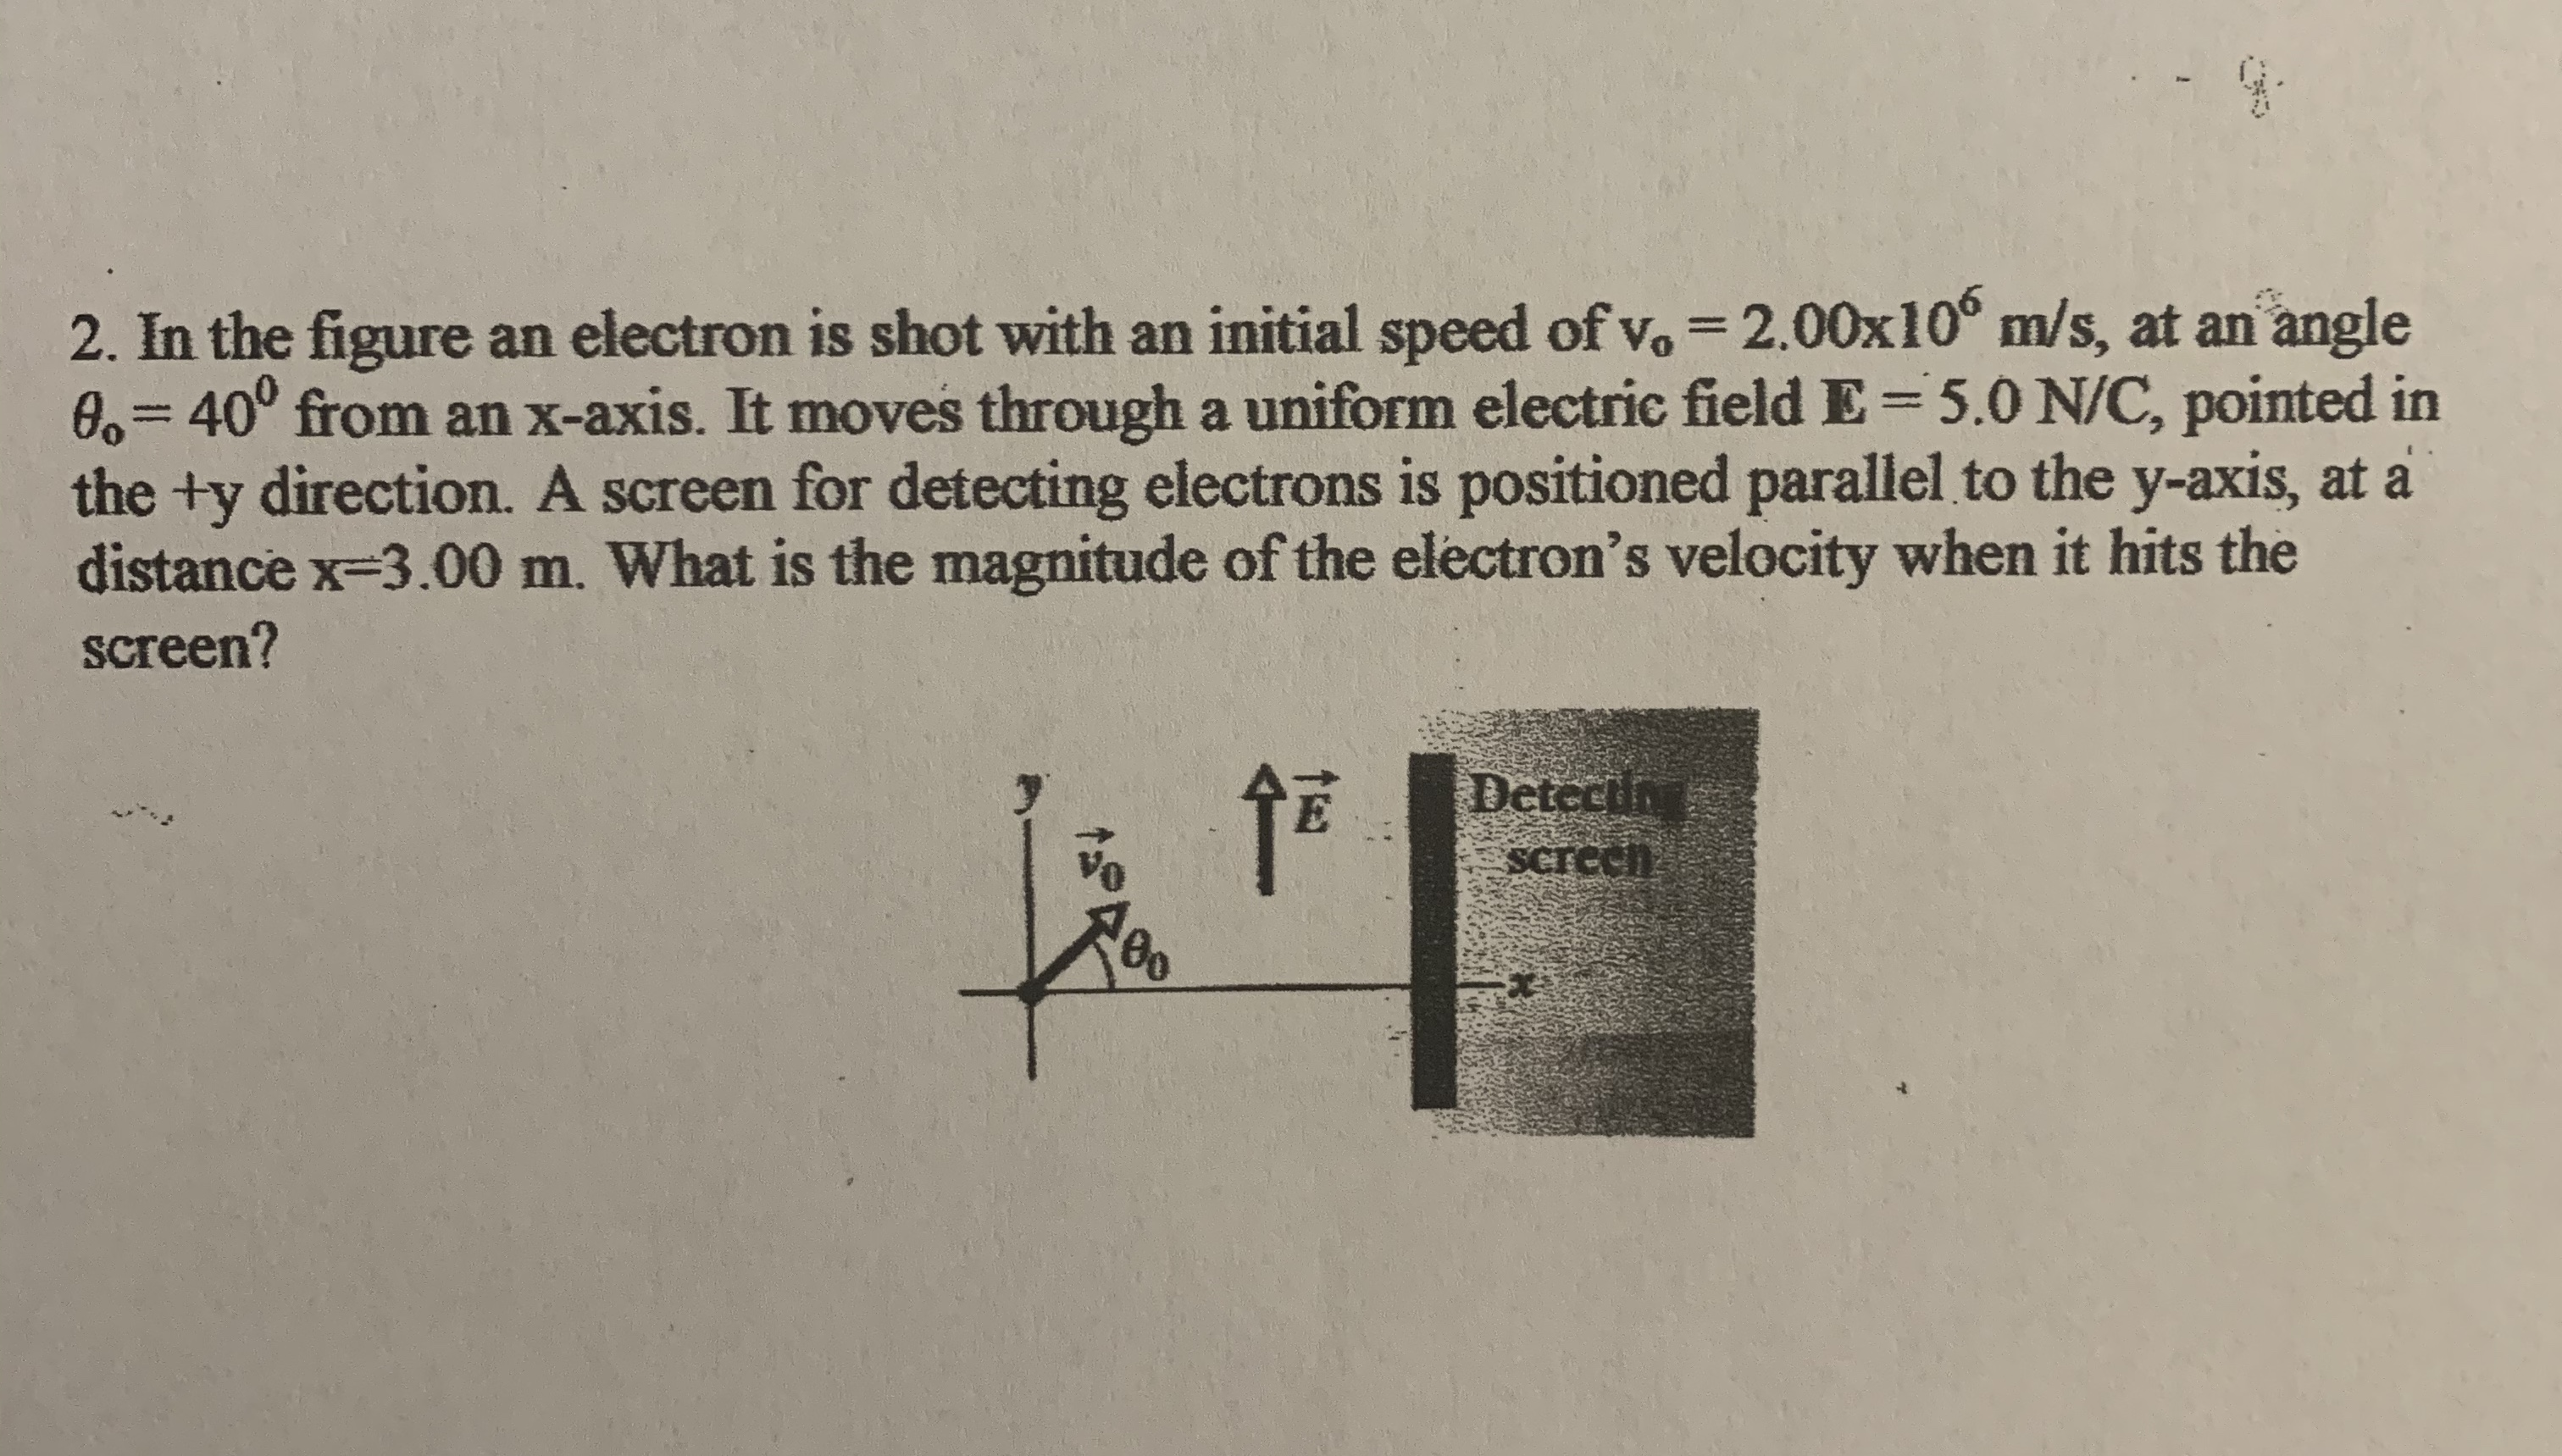 2. In the figure an electron is shot with an initial speed of vo = 2.00x10° m/s, at an angle 0,340° from an x-axis. It moves through a uniform electric field E=5.0 N/C, pointed in the +y direction. A screen for detecting electrons is positioned parallel to the y-axis, at a distance x-3.00 m. What is the magnitude of the electron's velocity when it hits the screen? %3D Detectin Screeh